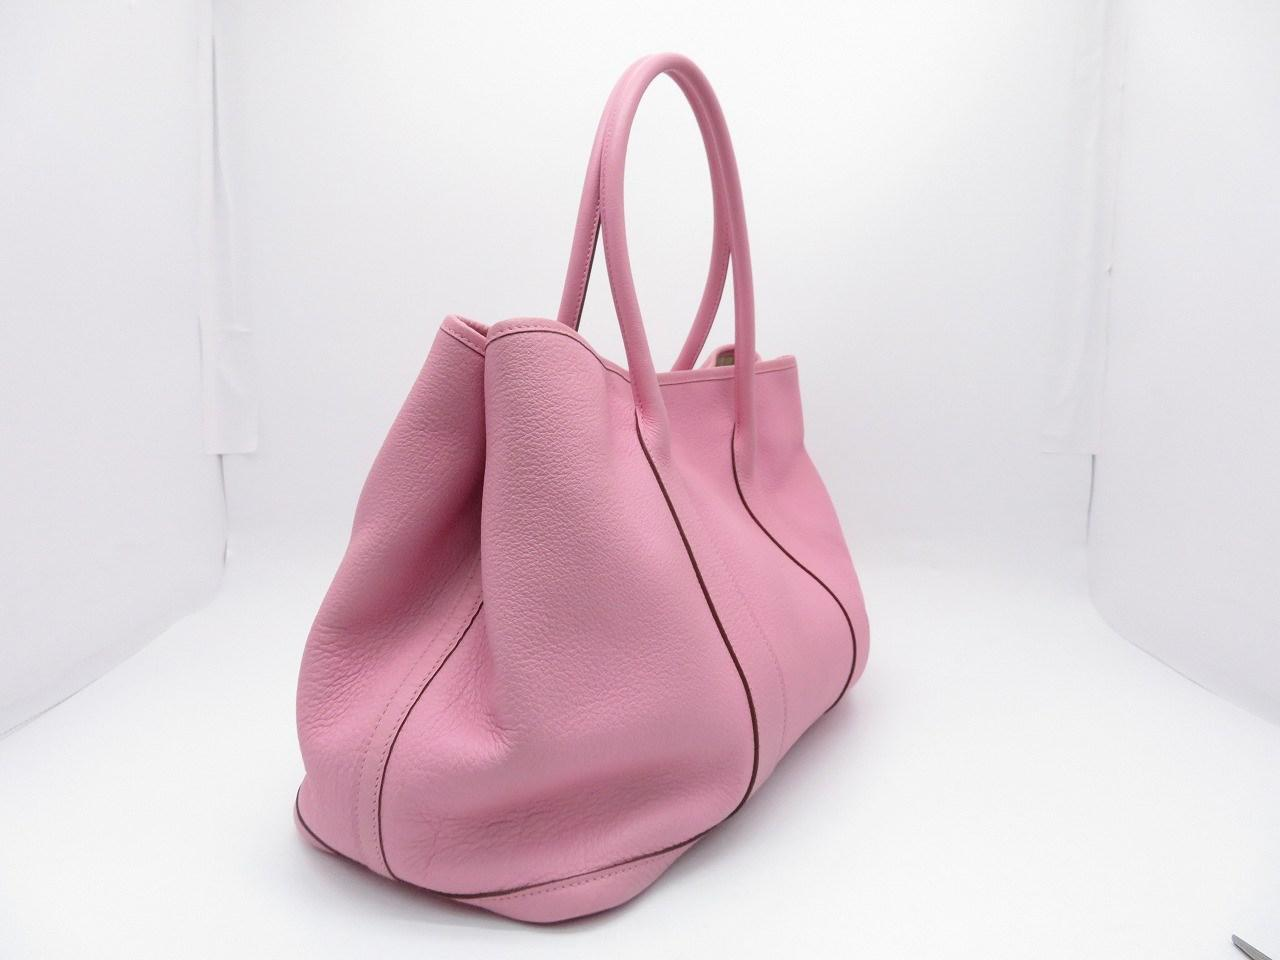 Lyst - Hermès Negonda Leather Garden Party Pm Tote Bag Handbag Rose ... 9efb029651